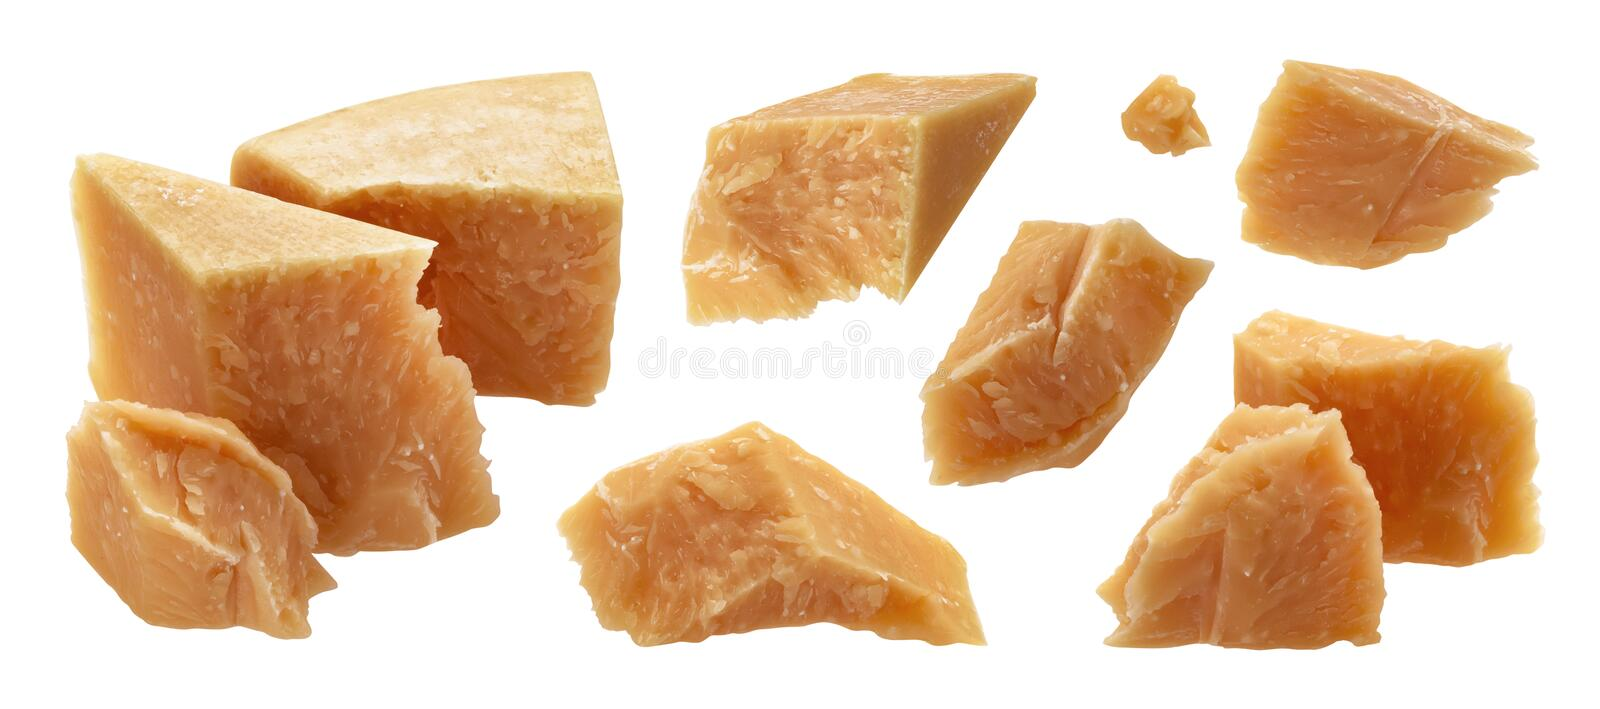 Parmesan cheese cut pieces isolated on white background stock photography